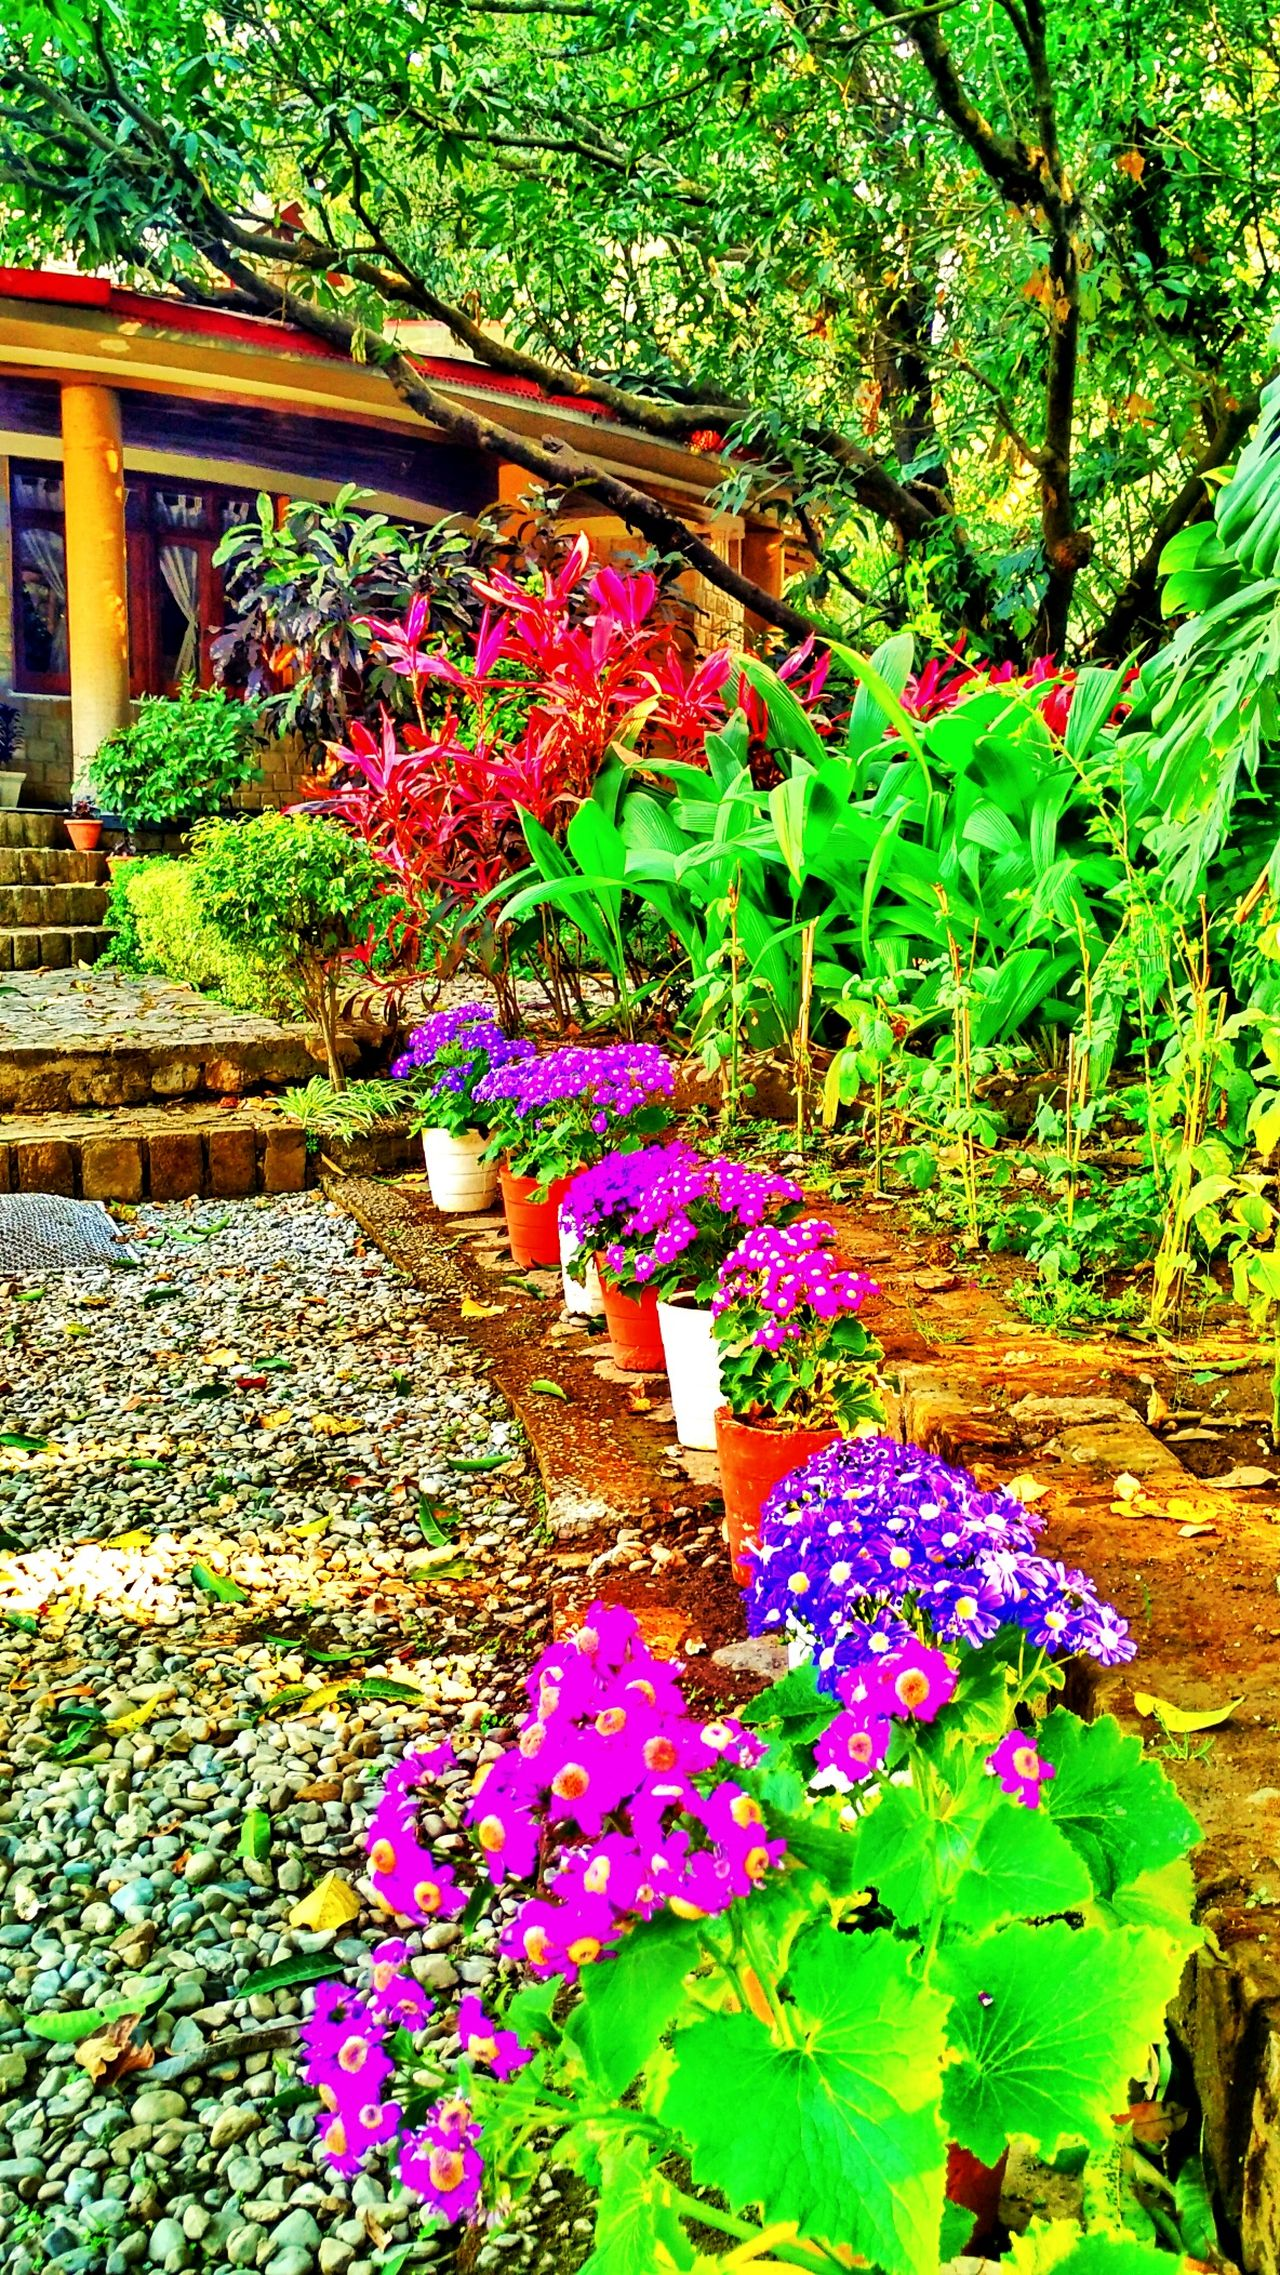 Vibrant Flowers Saturated Jim Corbett The Den Resort Vivid